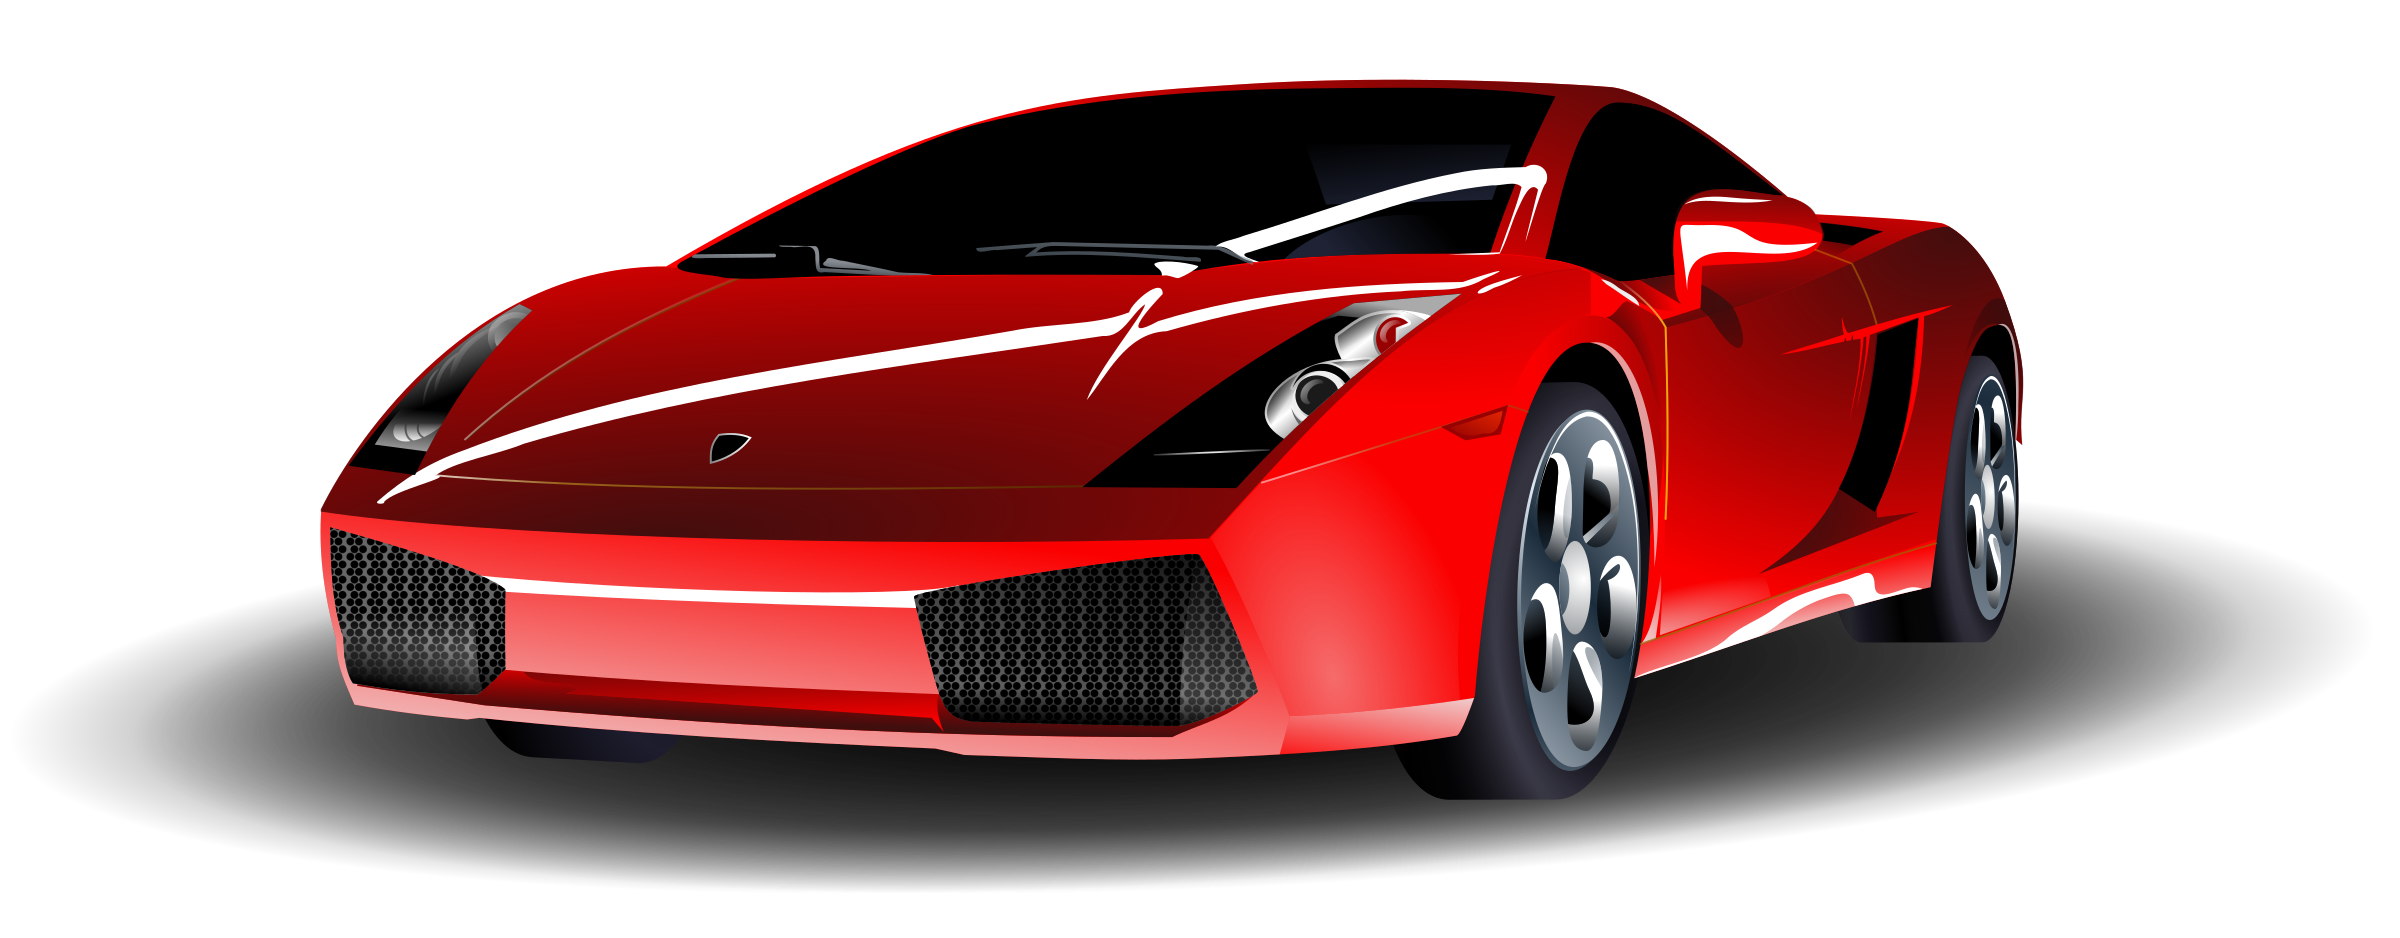 Lamborghini clipart sportscar Car Clipart Sports Sports Red